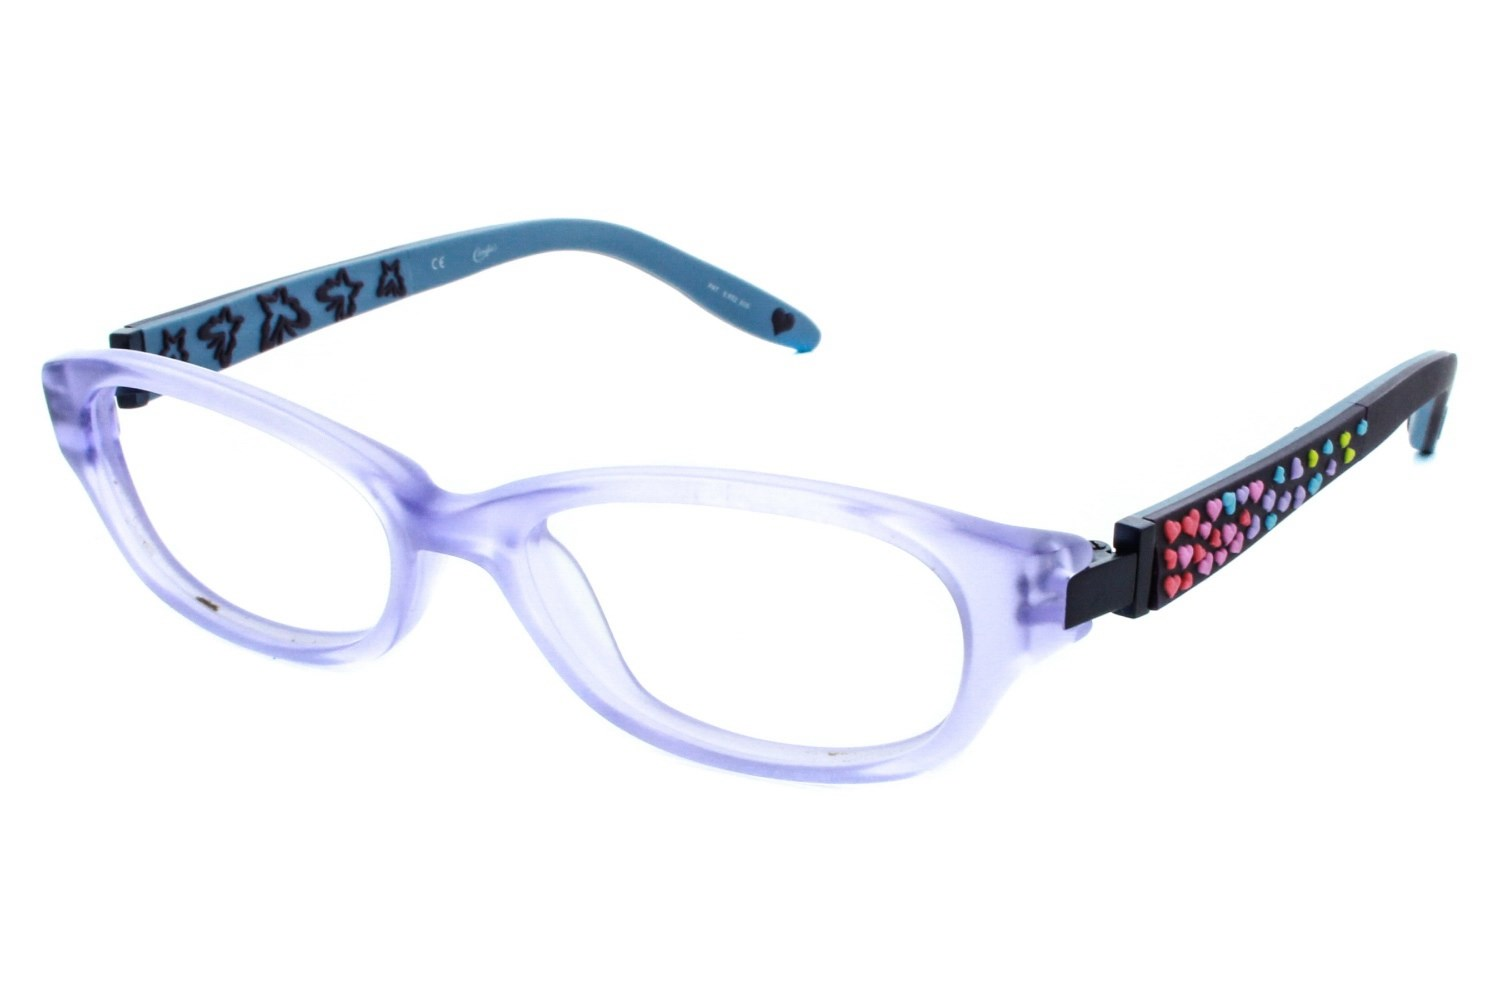 3df0f42eed55 Candies Honey Prescription Eyeglasses - youngestoffashionistas